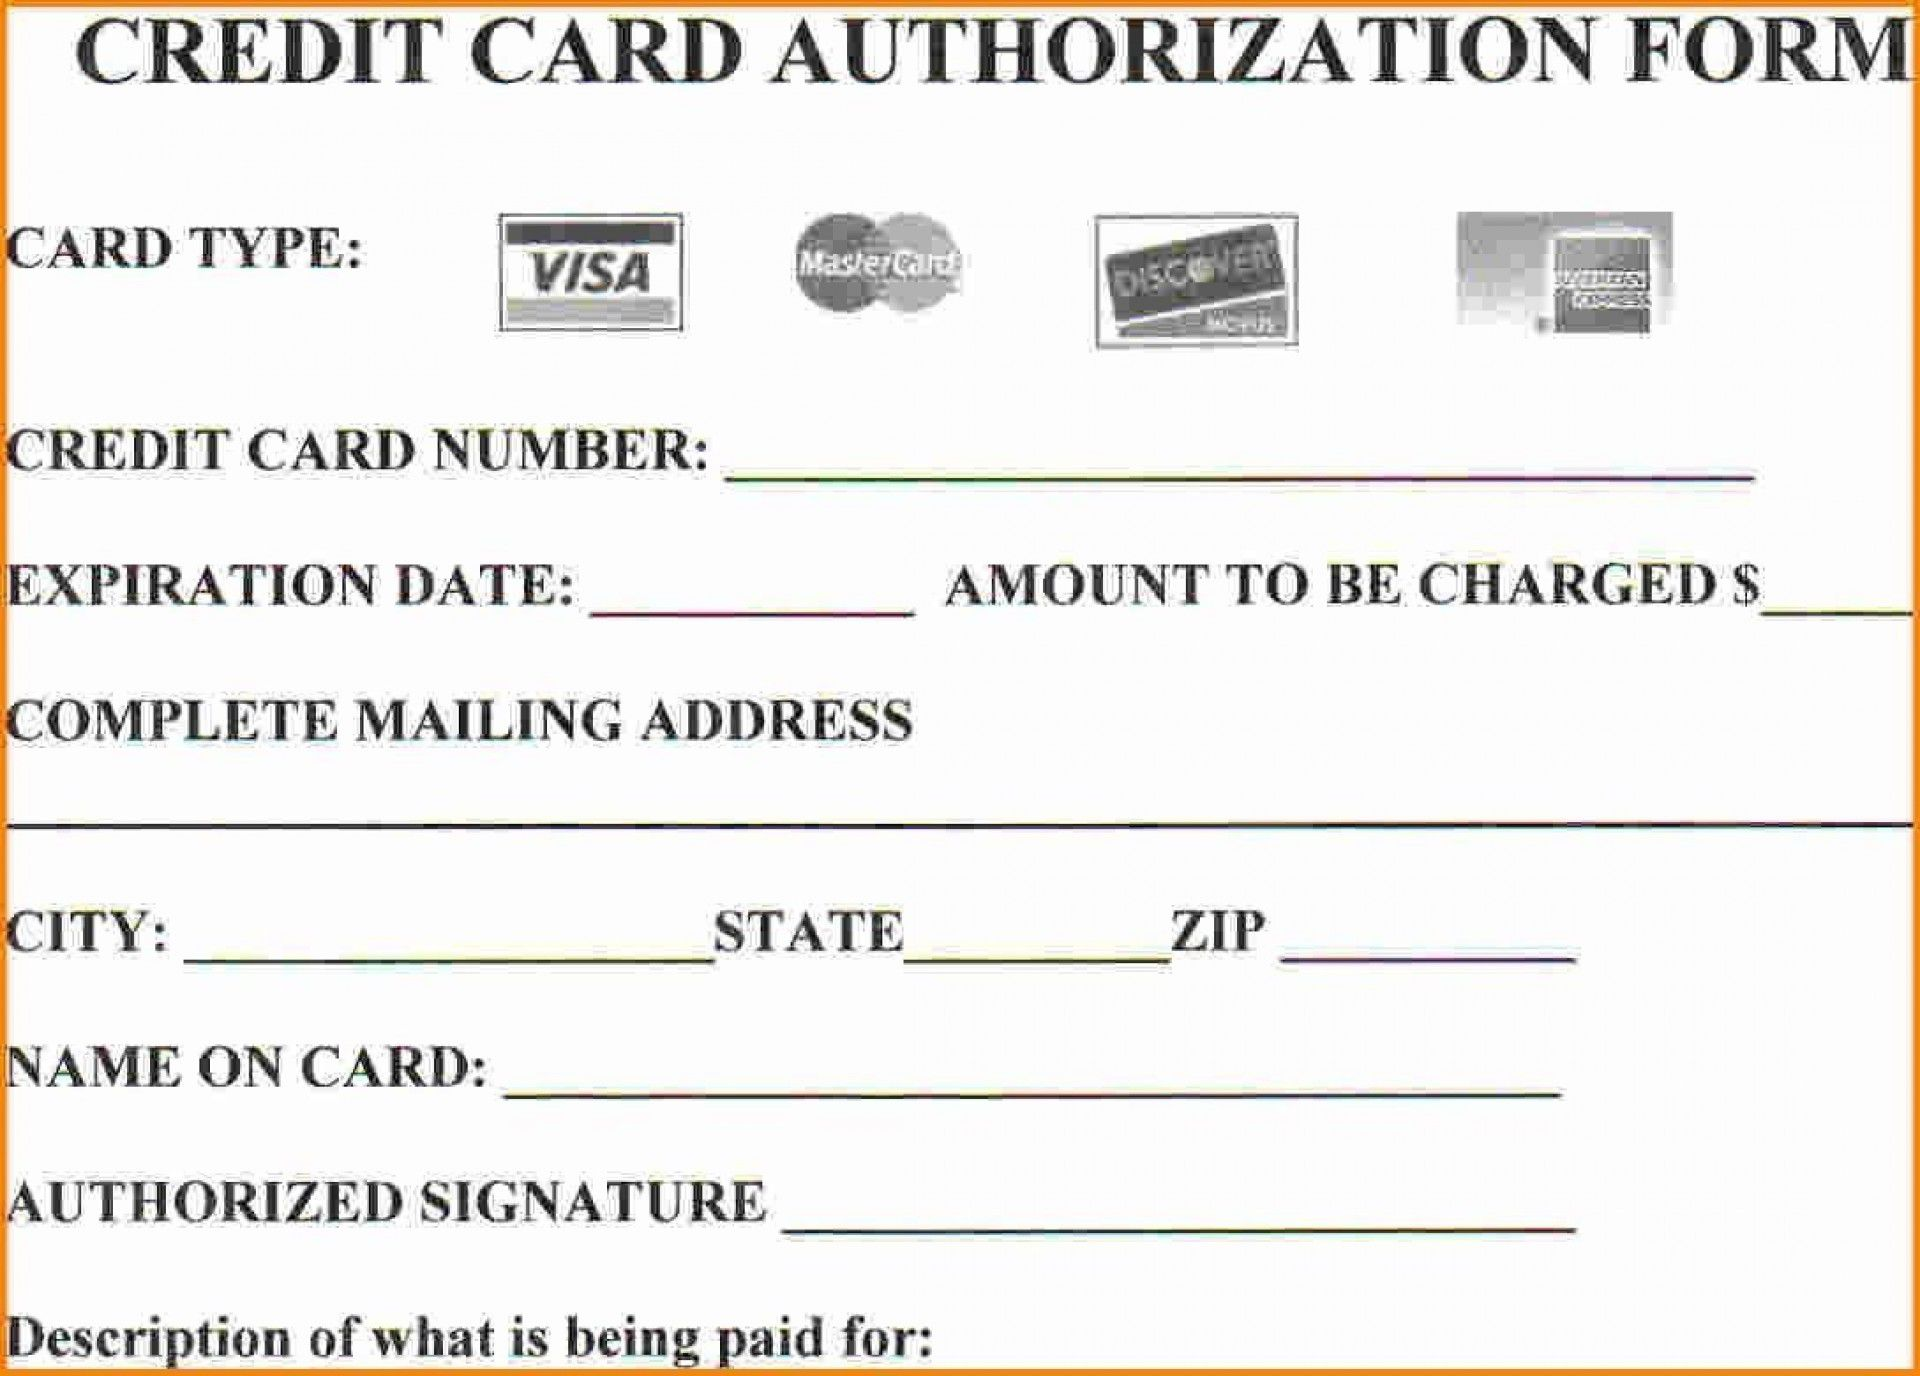 008 Simple Credit Card Payment Form Template Pdf Inspiration  AuthorizationFull